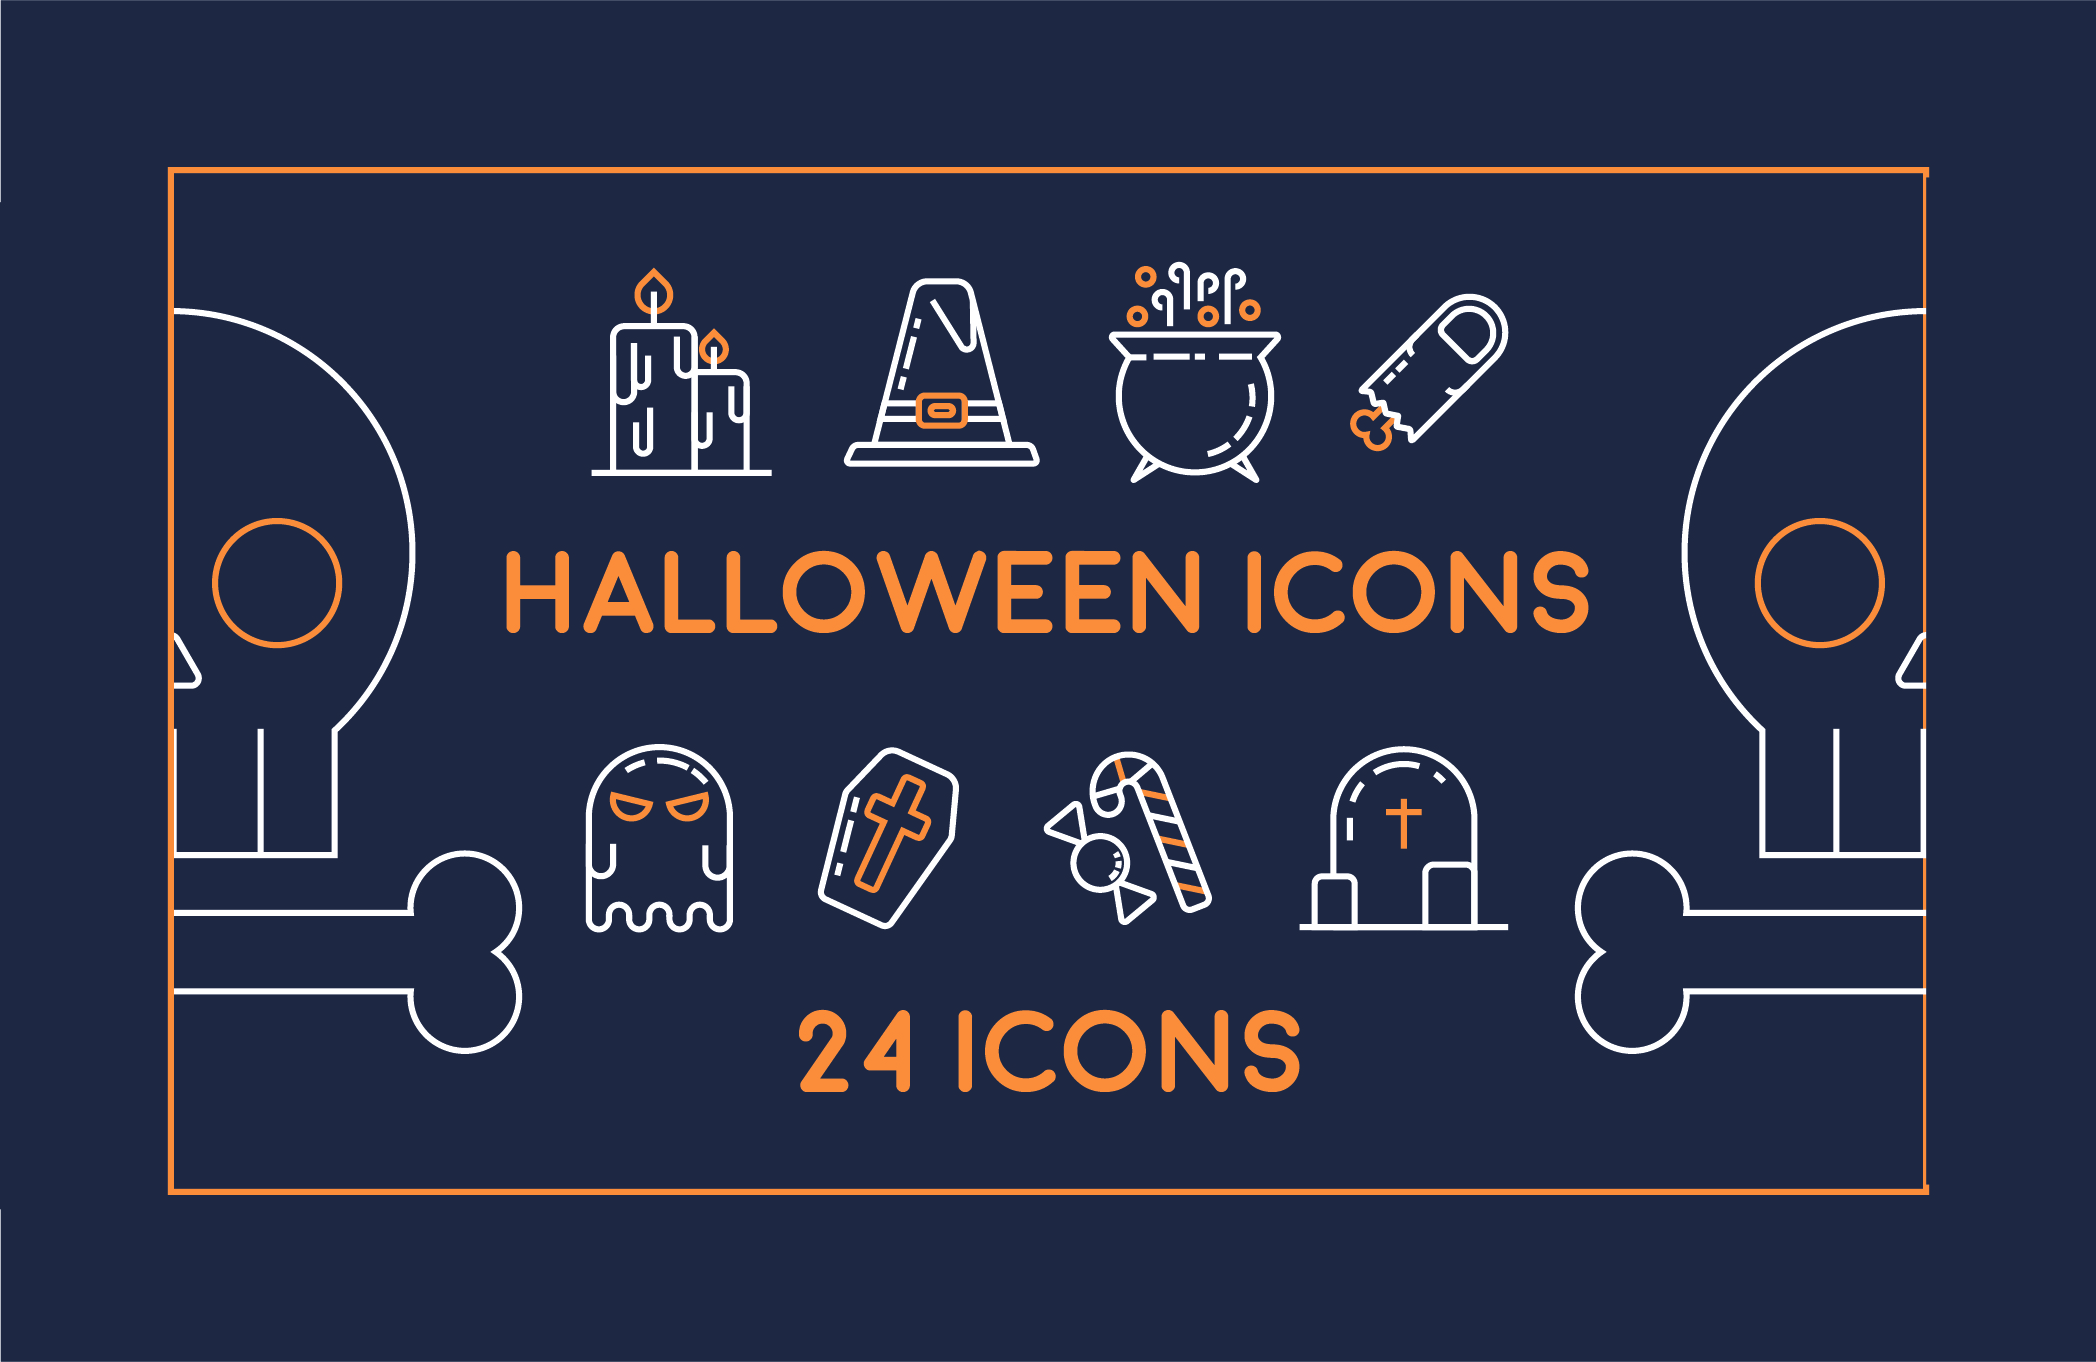 Halloween Icon Pack Graphic Icons By Mike Hill